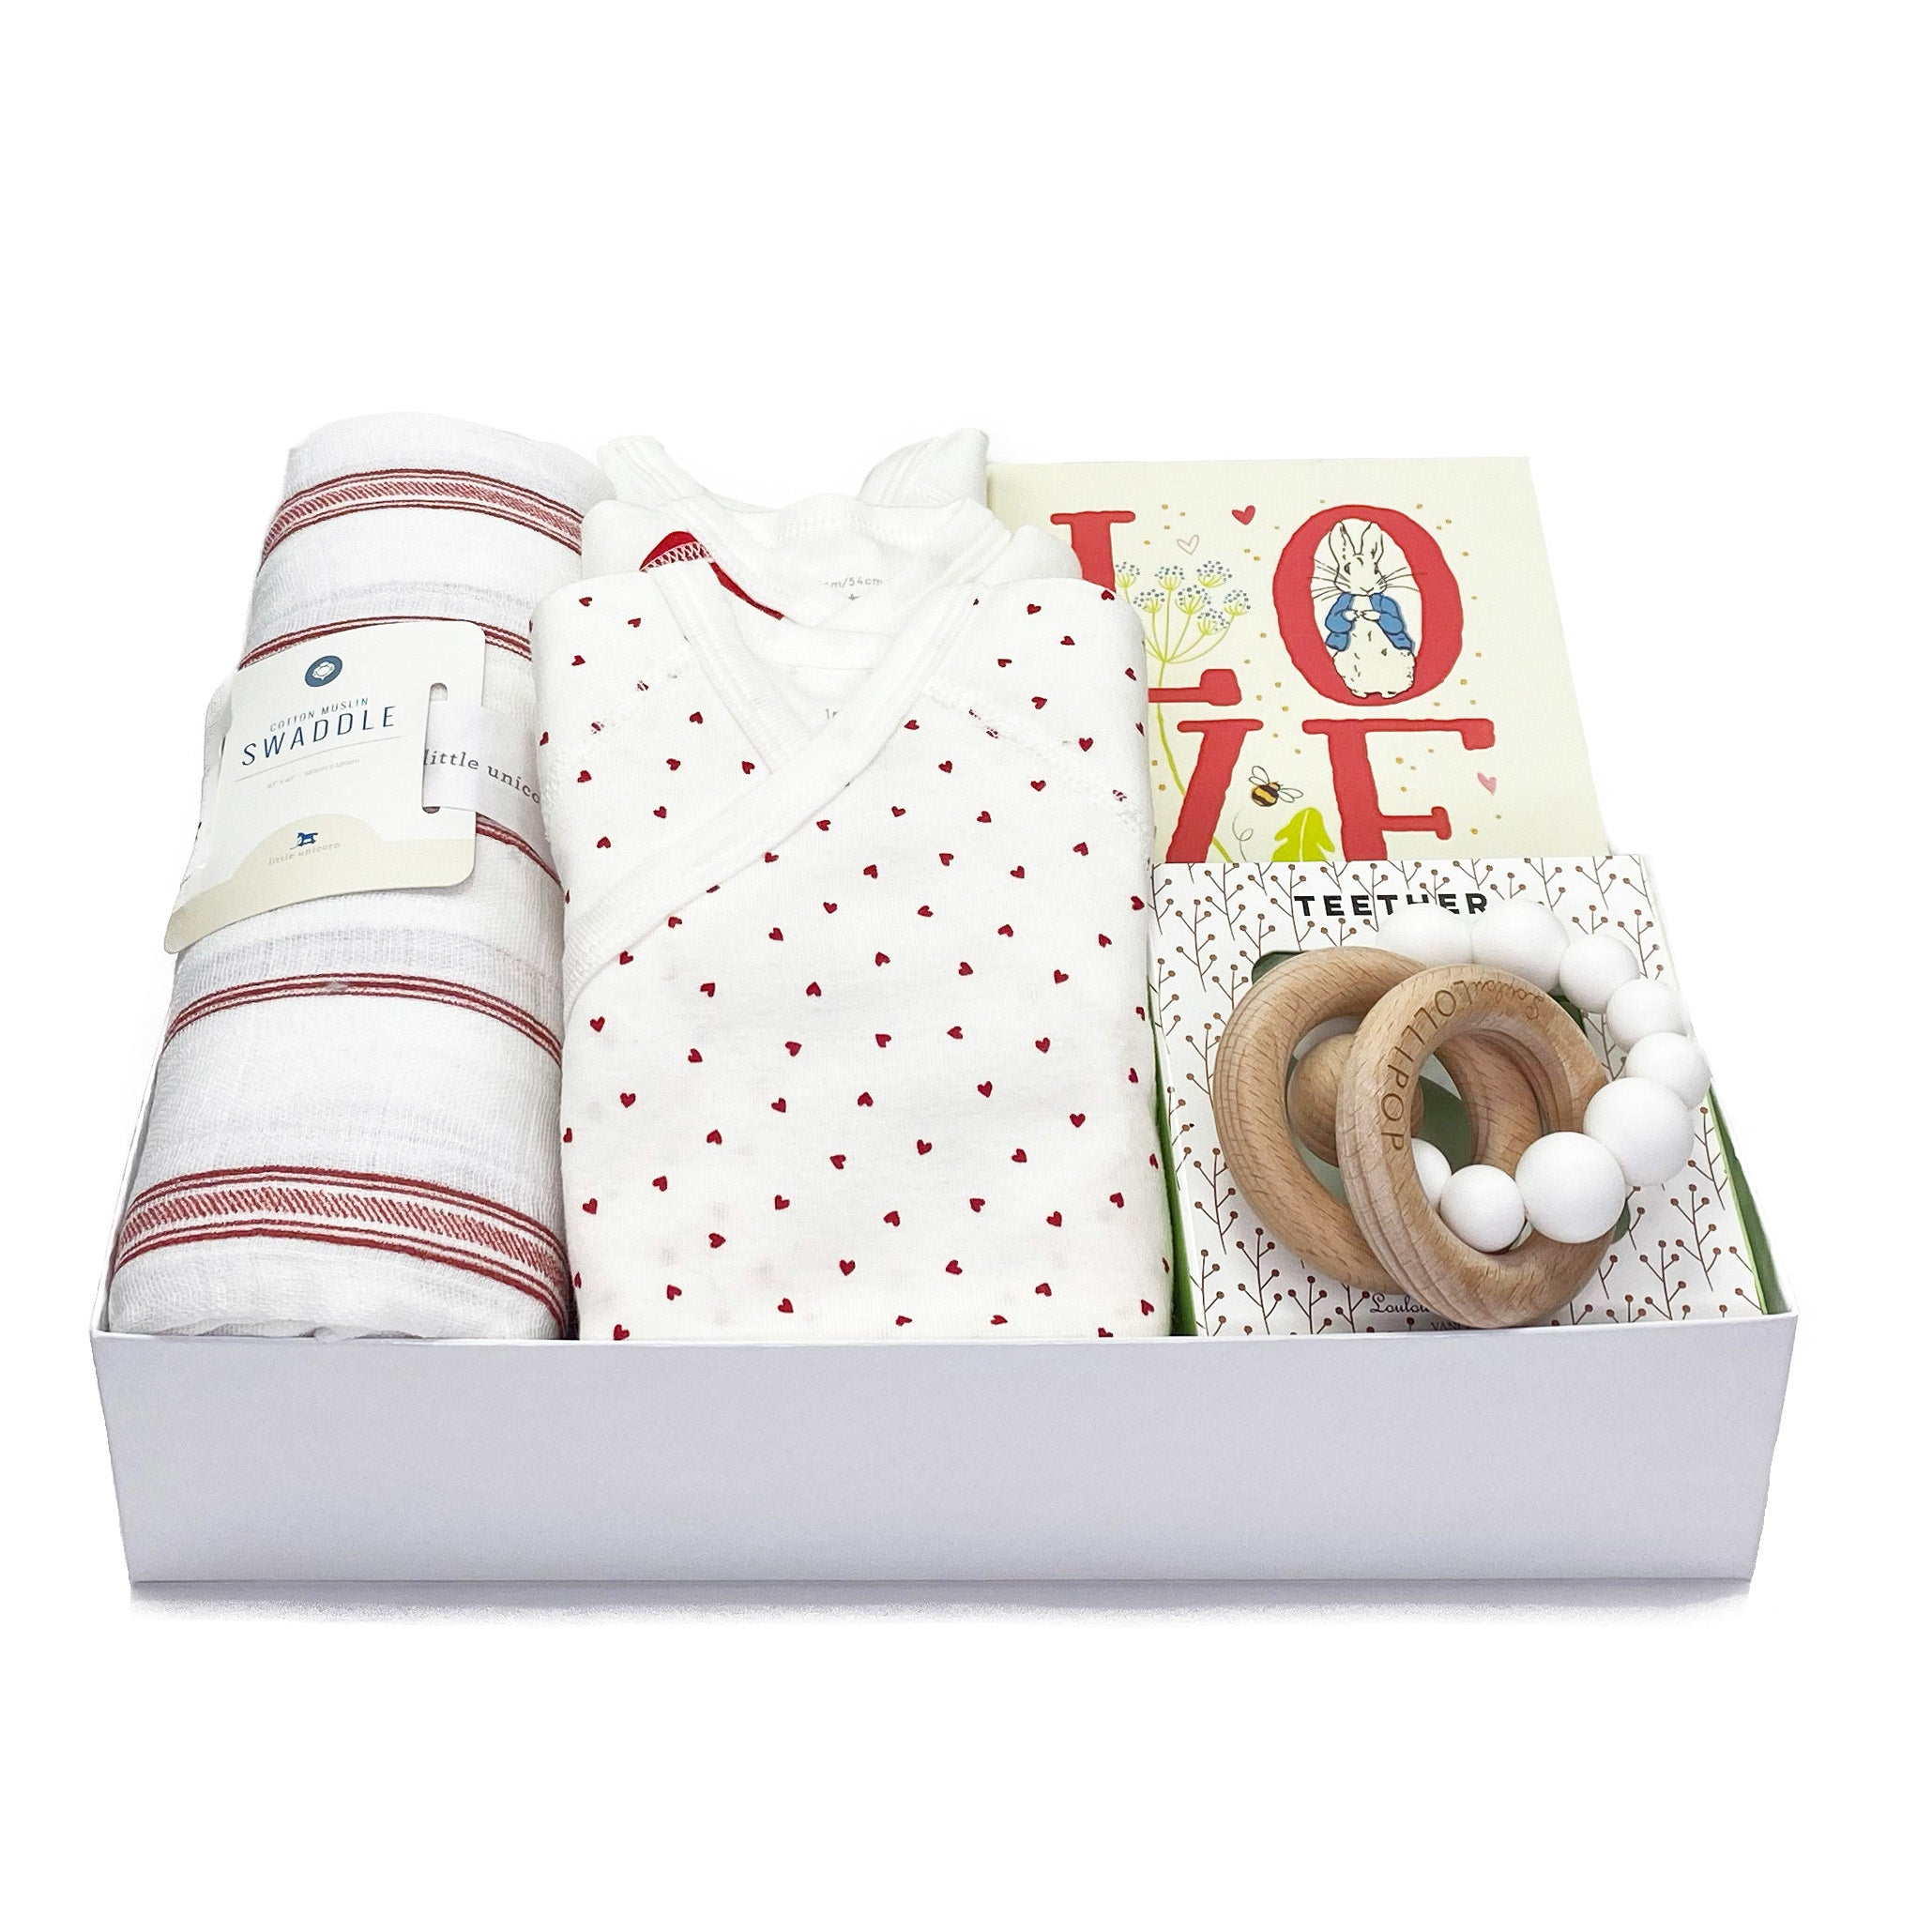 Love Baby Gift Box at Bonjour Baby Baskets, Luxury Baby Gifts